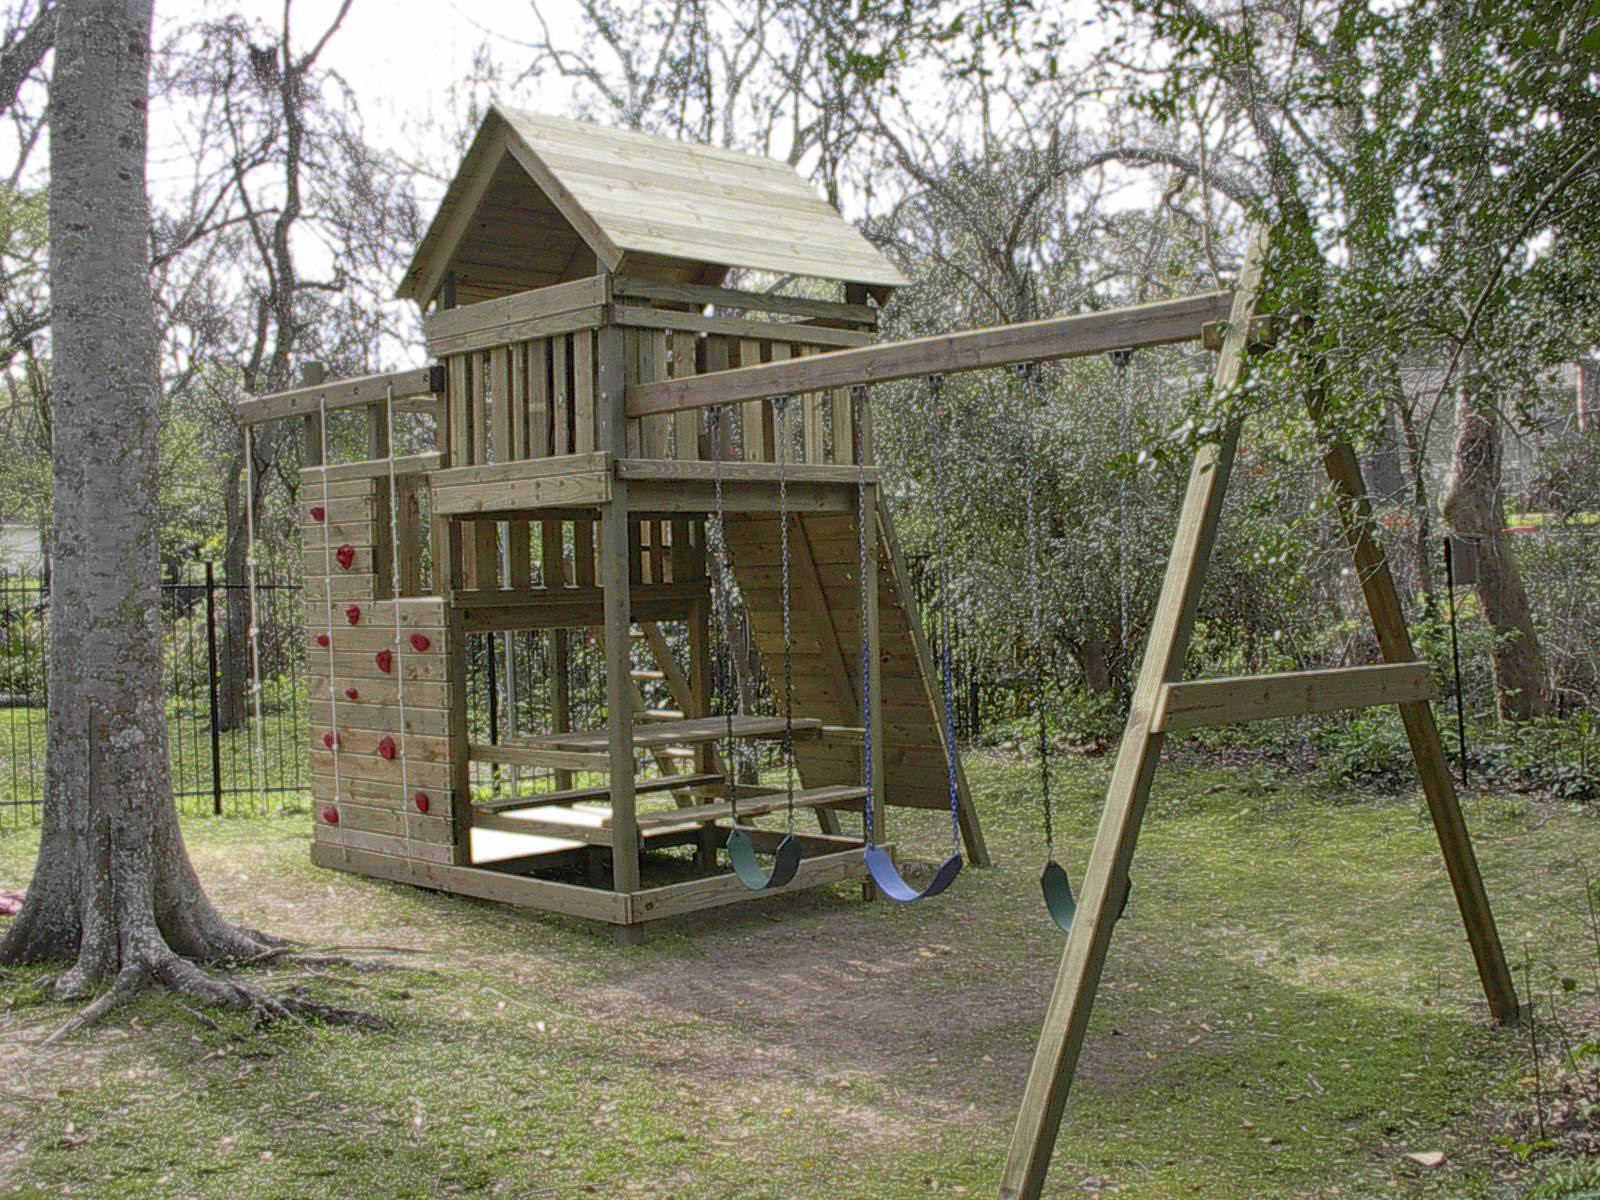 Best ideas about DIY Wood Swing Set Plans . Save or Pin Gemini Playset DIY Wood Fort and Swingset Plans Now.